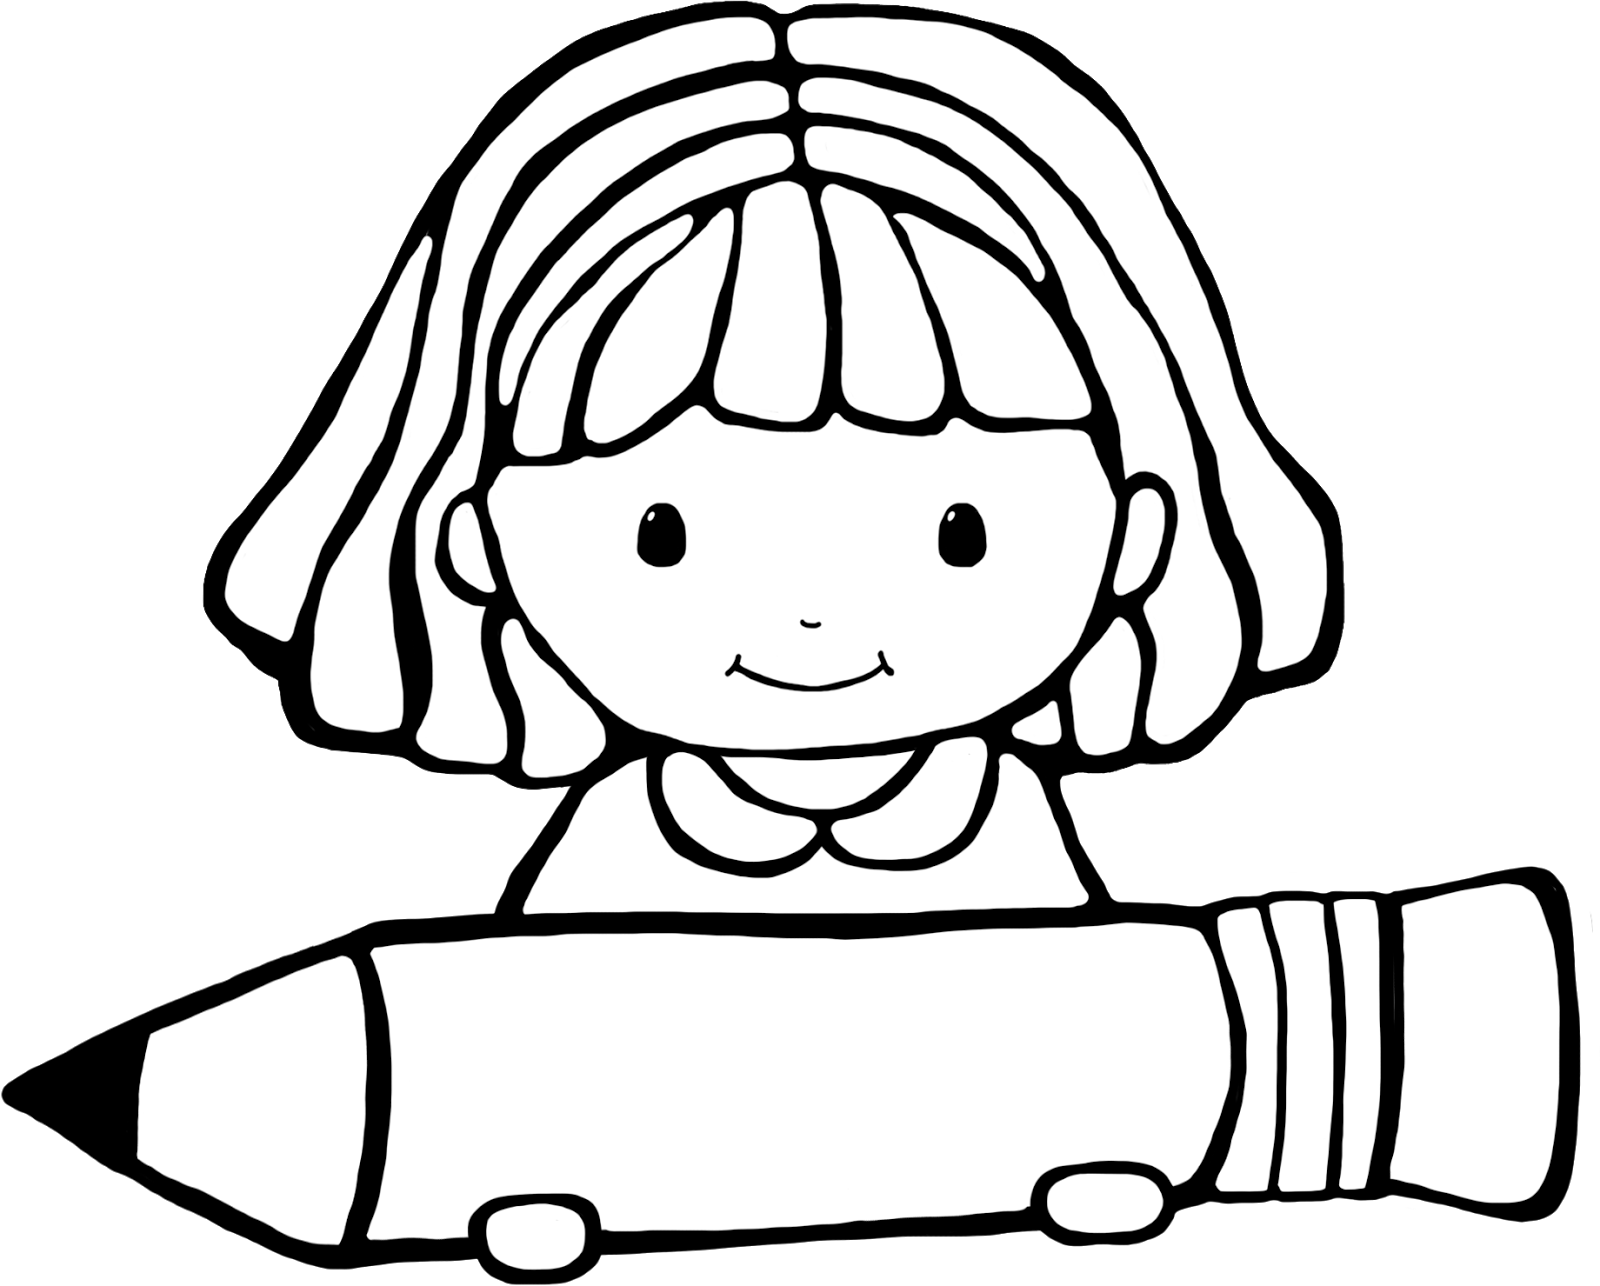 Student Clipart Black And White: Student Clipart Black And White 2 » Clipart Station